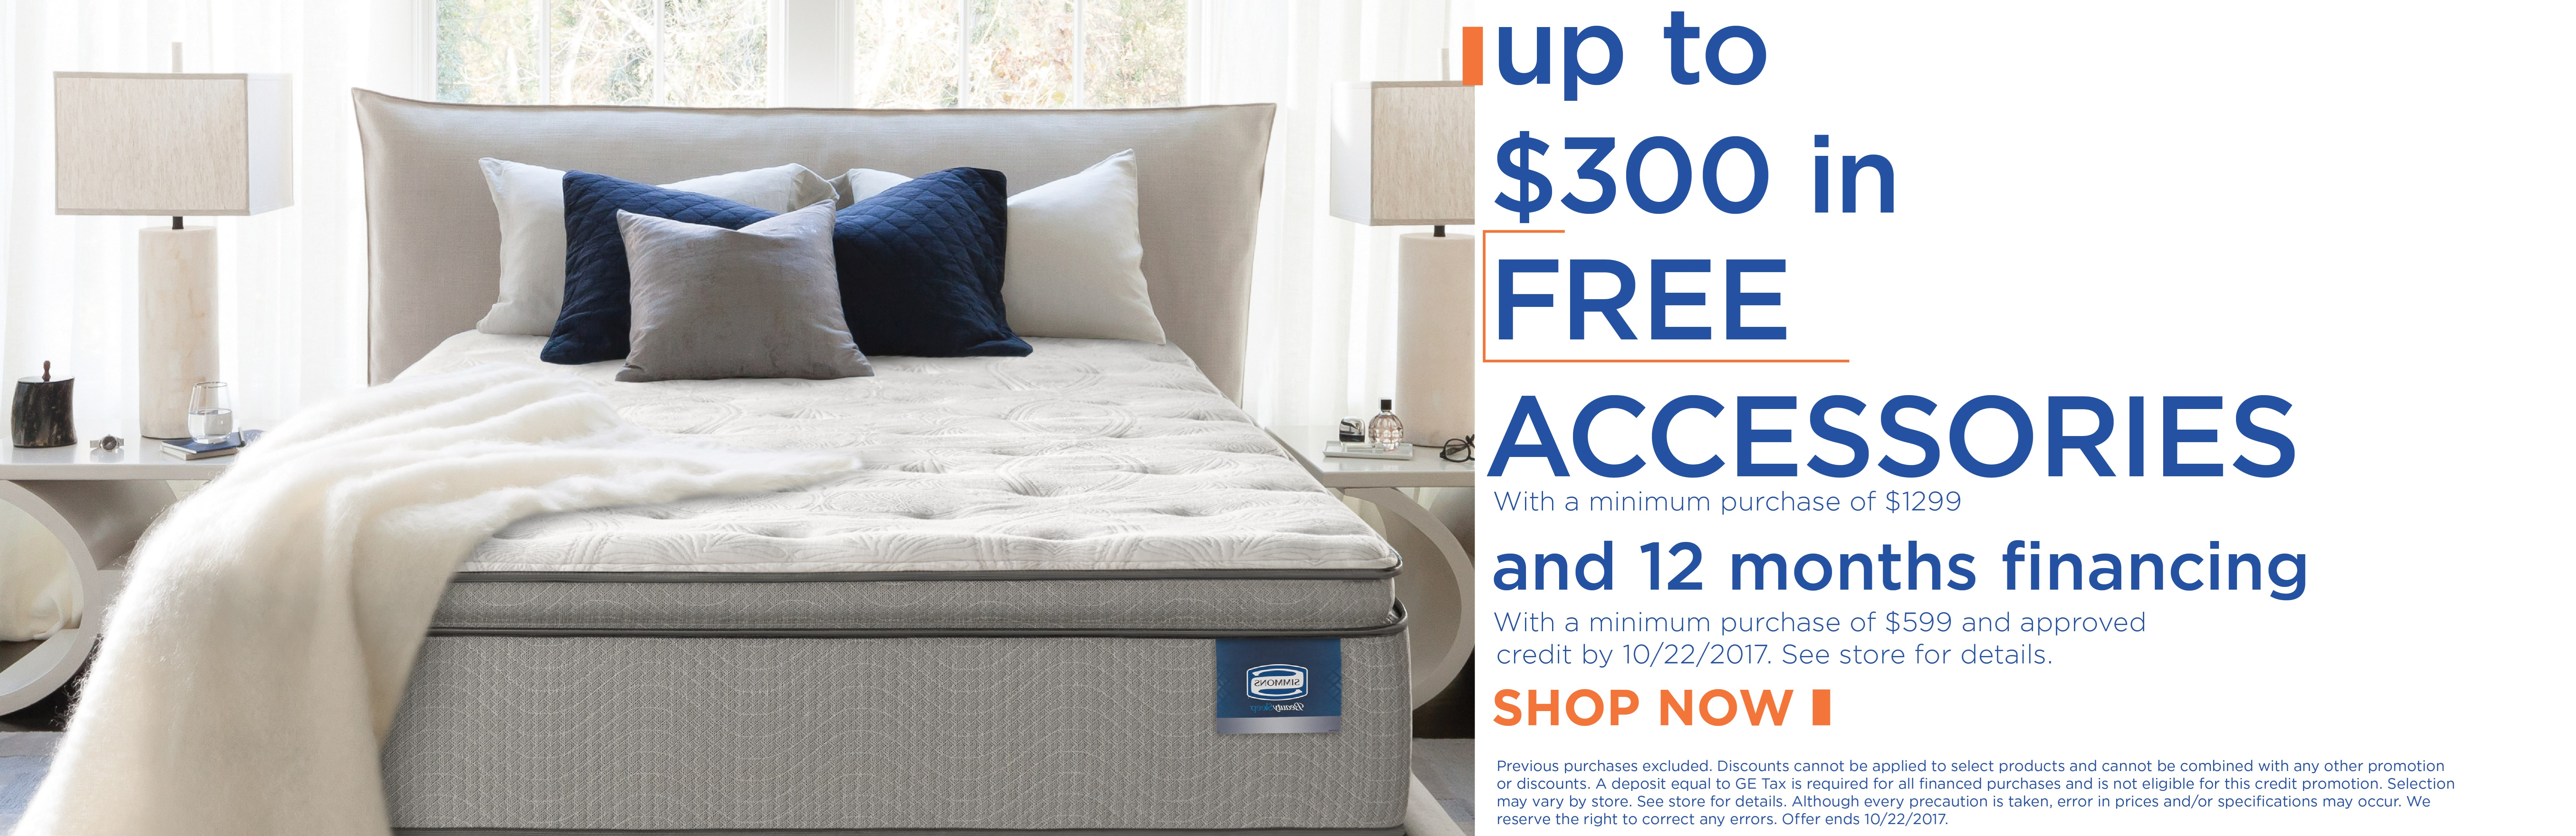 Get up to $300 in free accessories with minimum purchase of $1299; special financing available. See store for details.